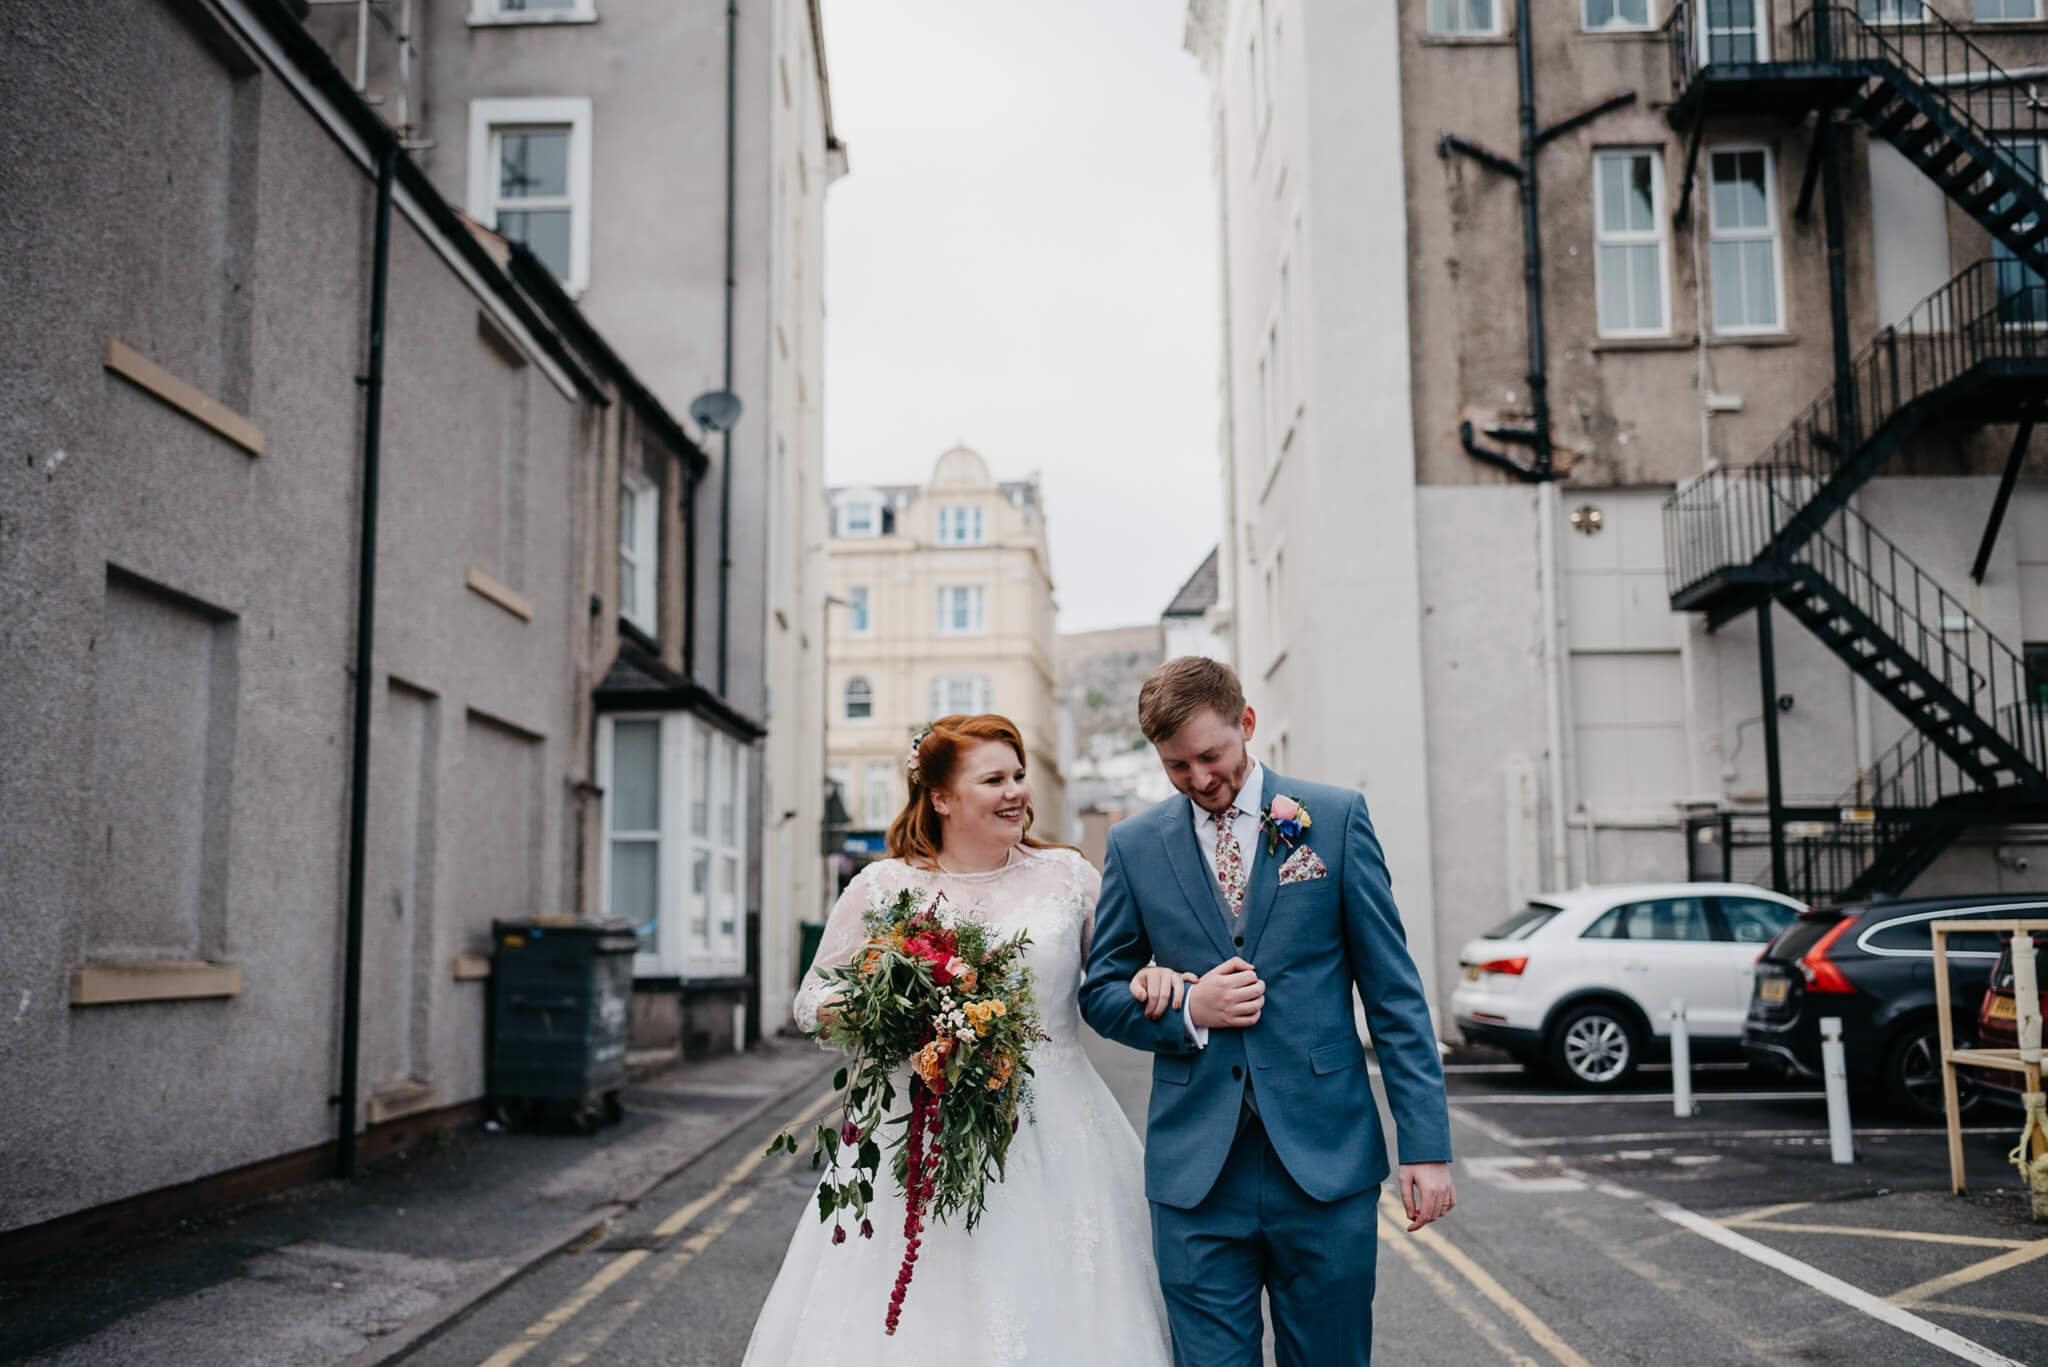 alternative couple walk through city streets during their wedding portraits